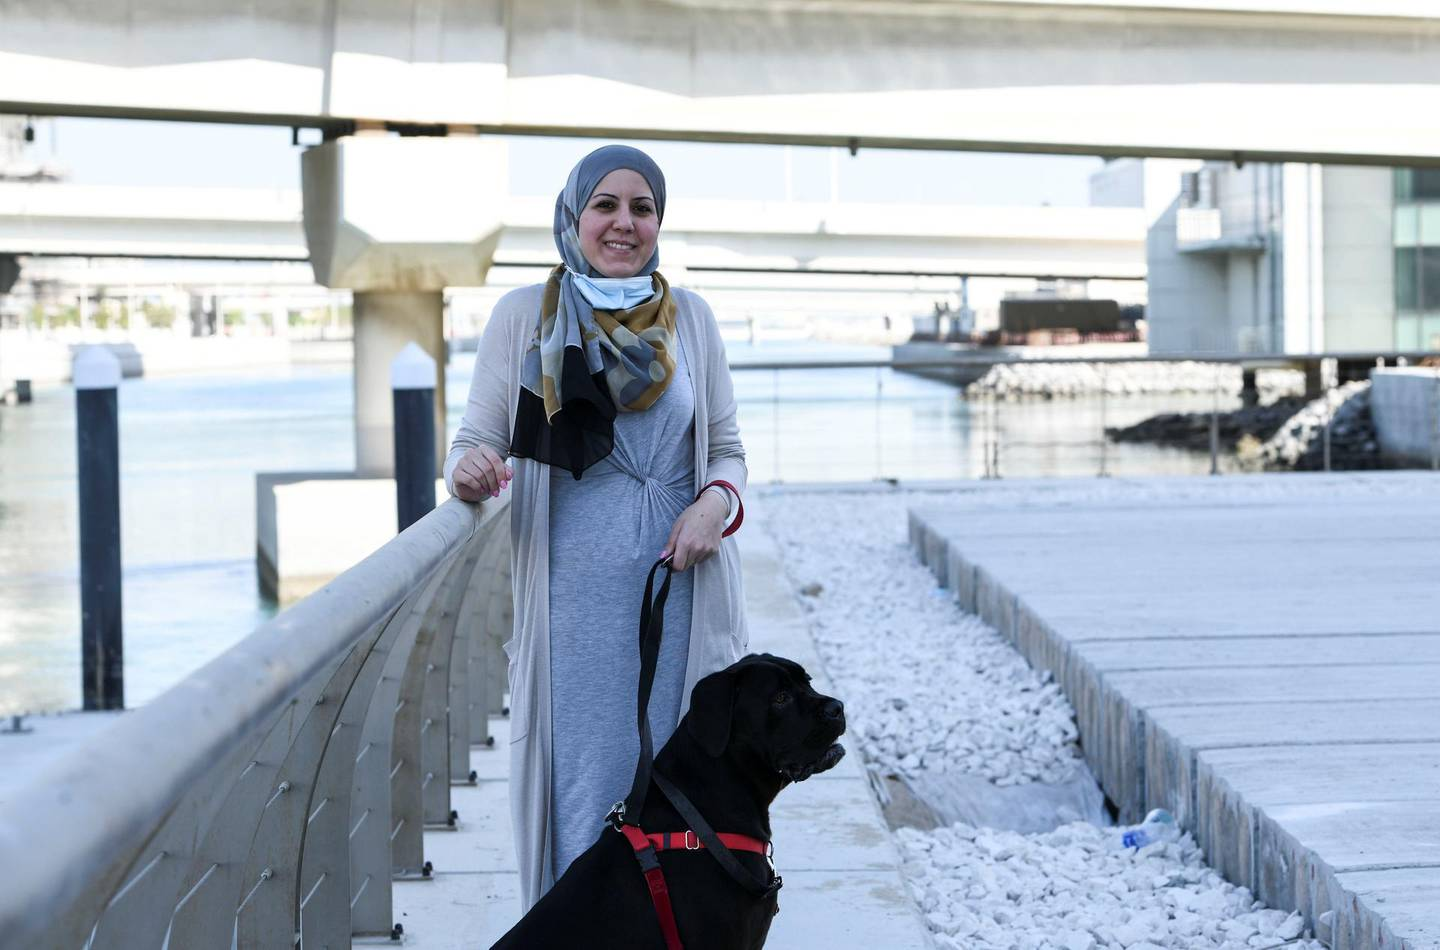 Abu Dhabi, United Arab Emirates - Yasmeen El Mallah outside her residence  with her dog Pablo, who is 4 years old, and was adopted from Egypt.  She enjoys living on Al Reem Island, and has been residing there for the past 6 years. Khushnum Bhandari for The National